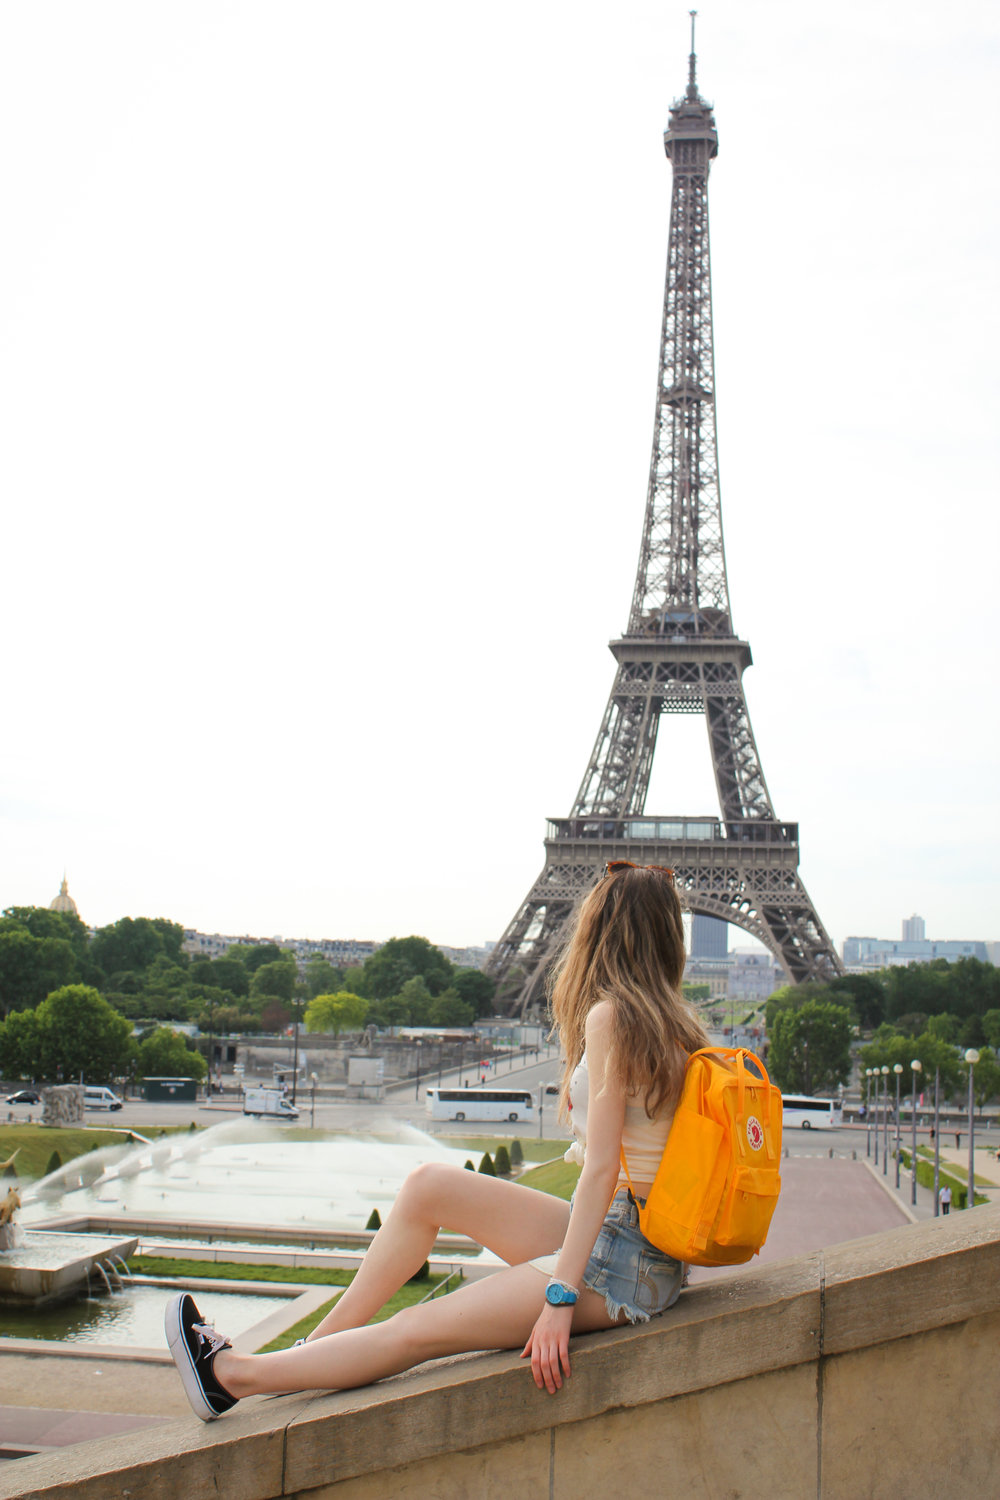 27th May - looking at the Eiffel Tower…